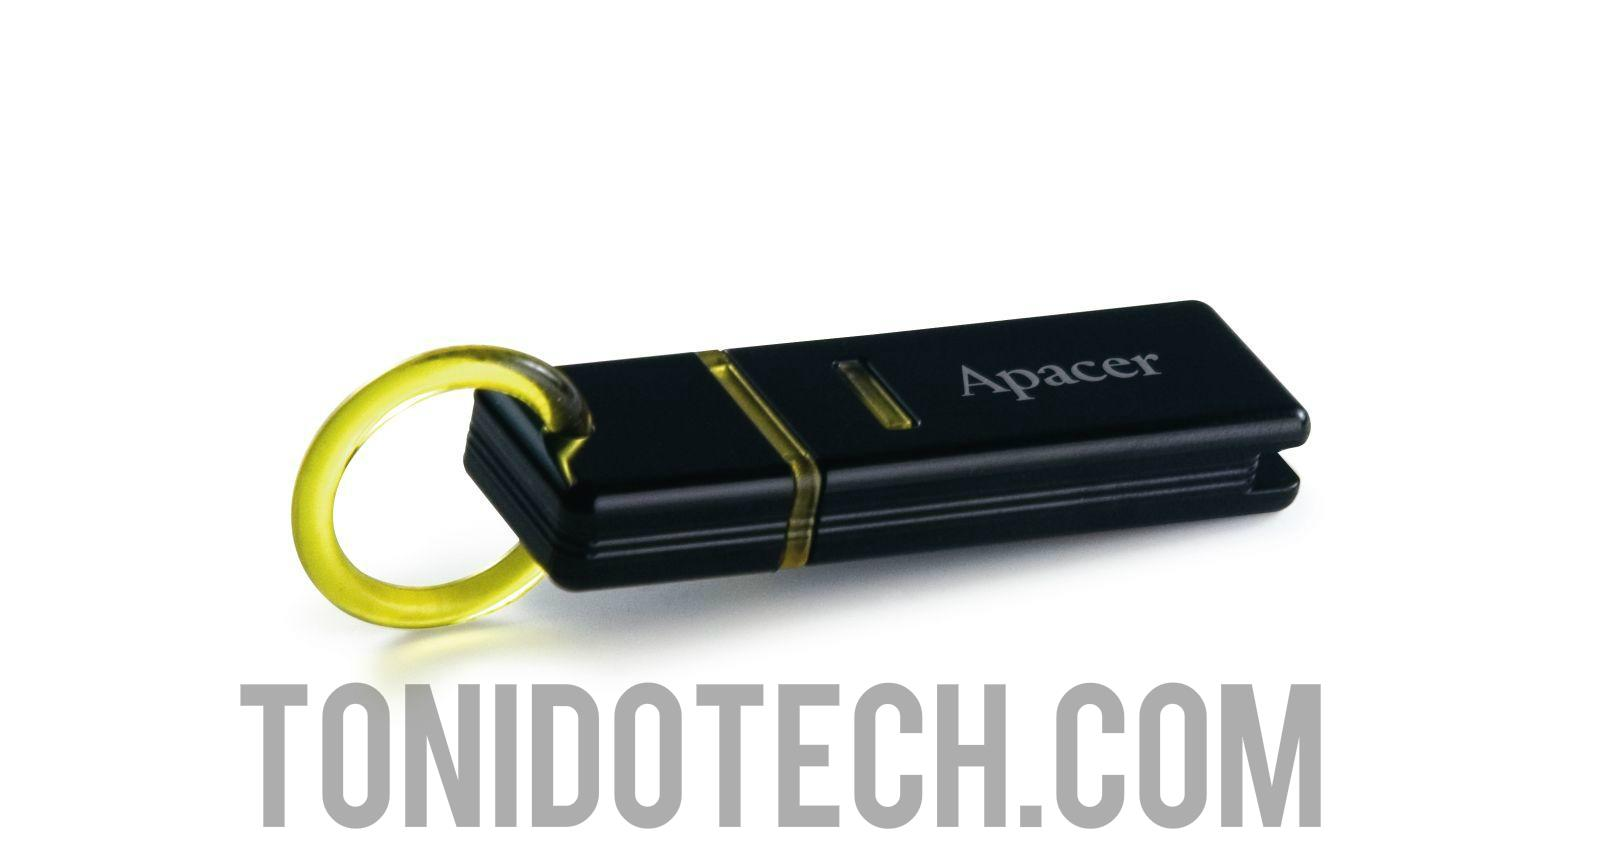 Apacer AH221 2GB USB Pen / Thumb / Flash Drive